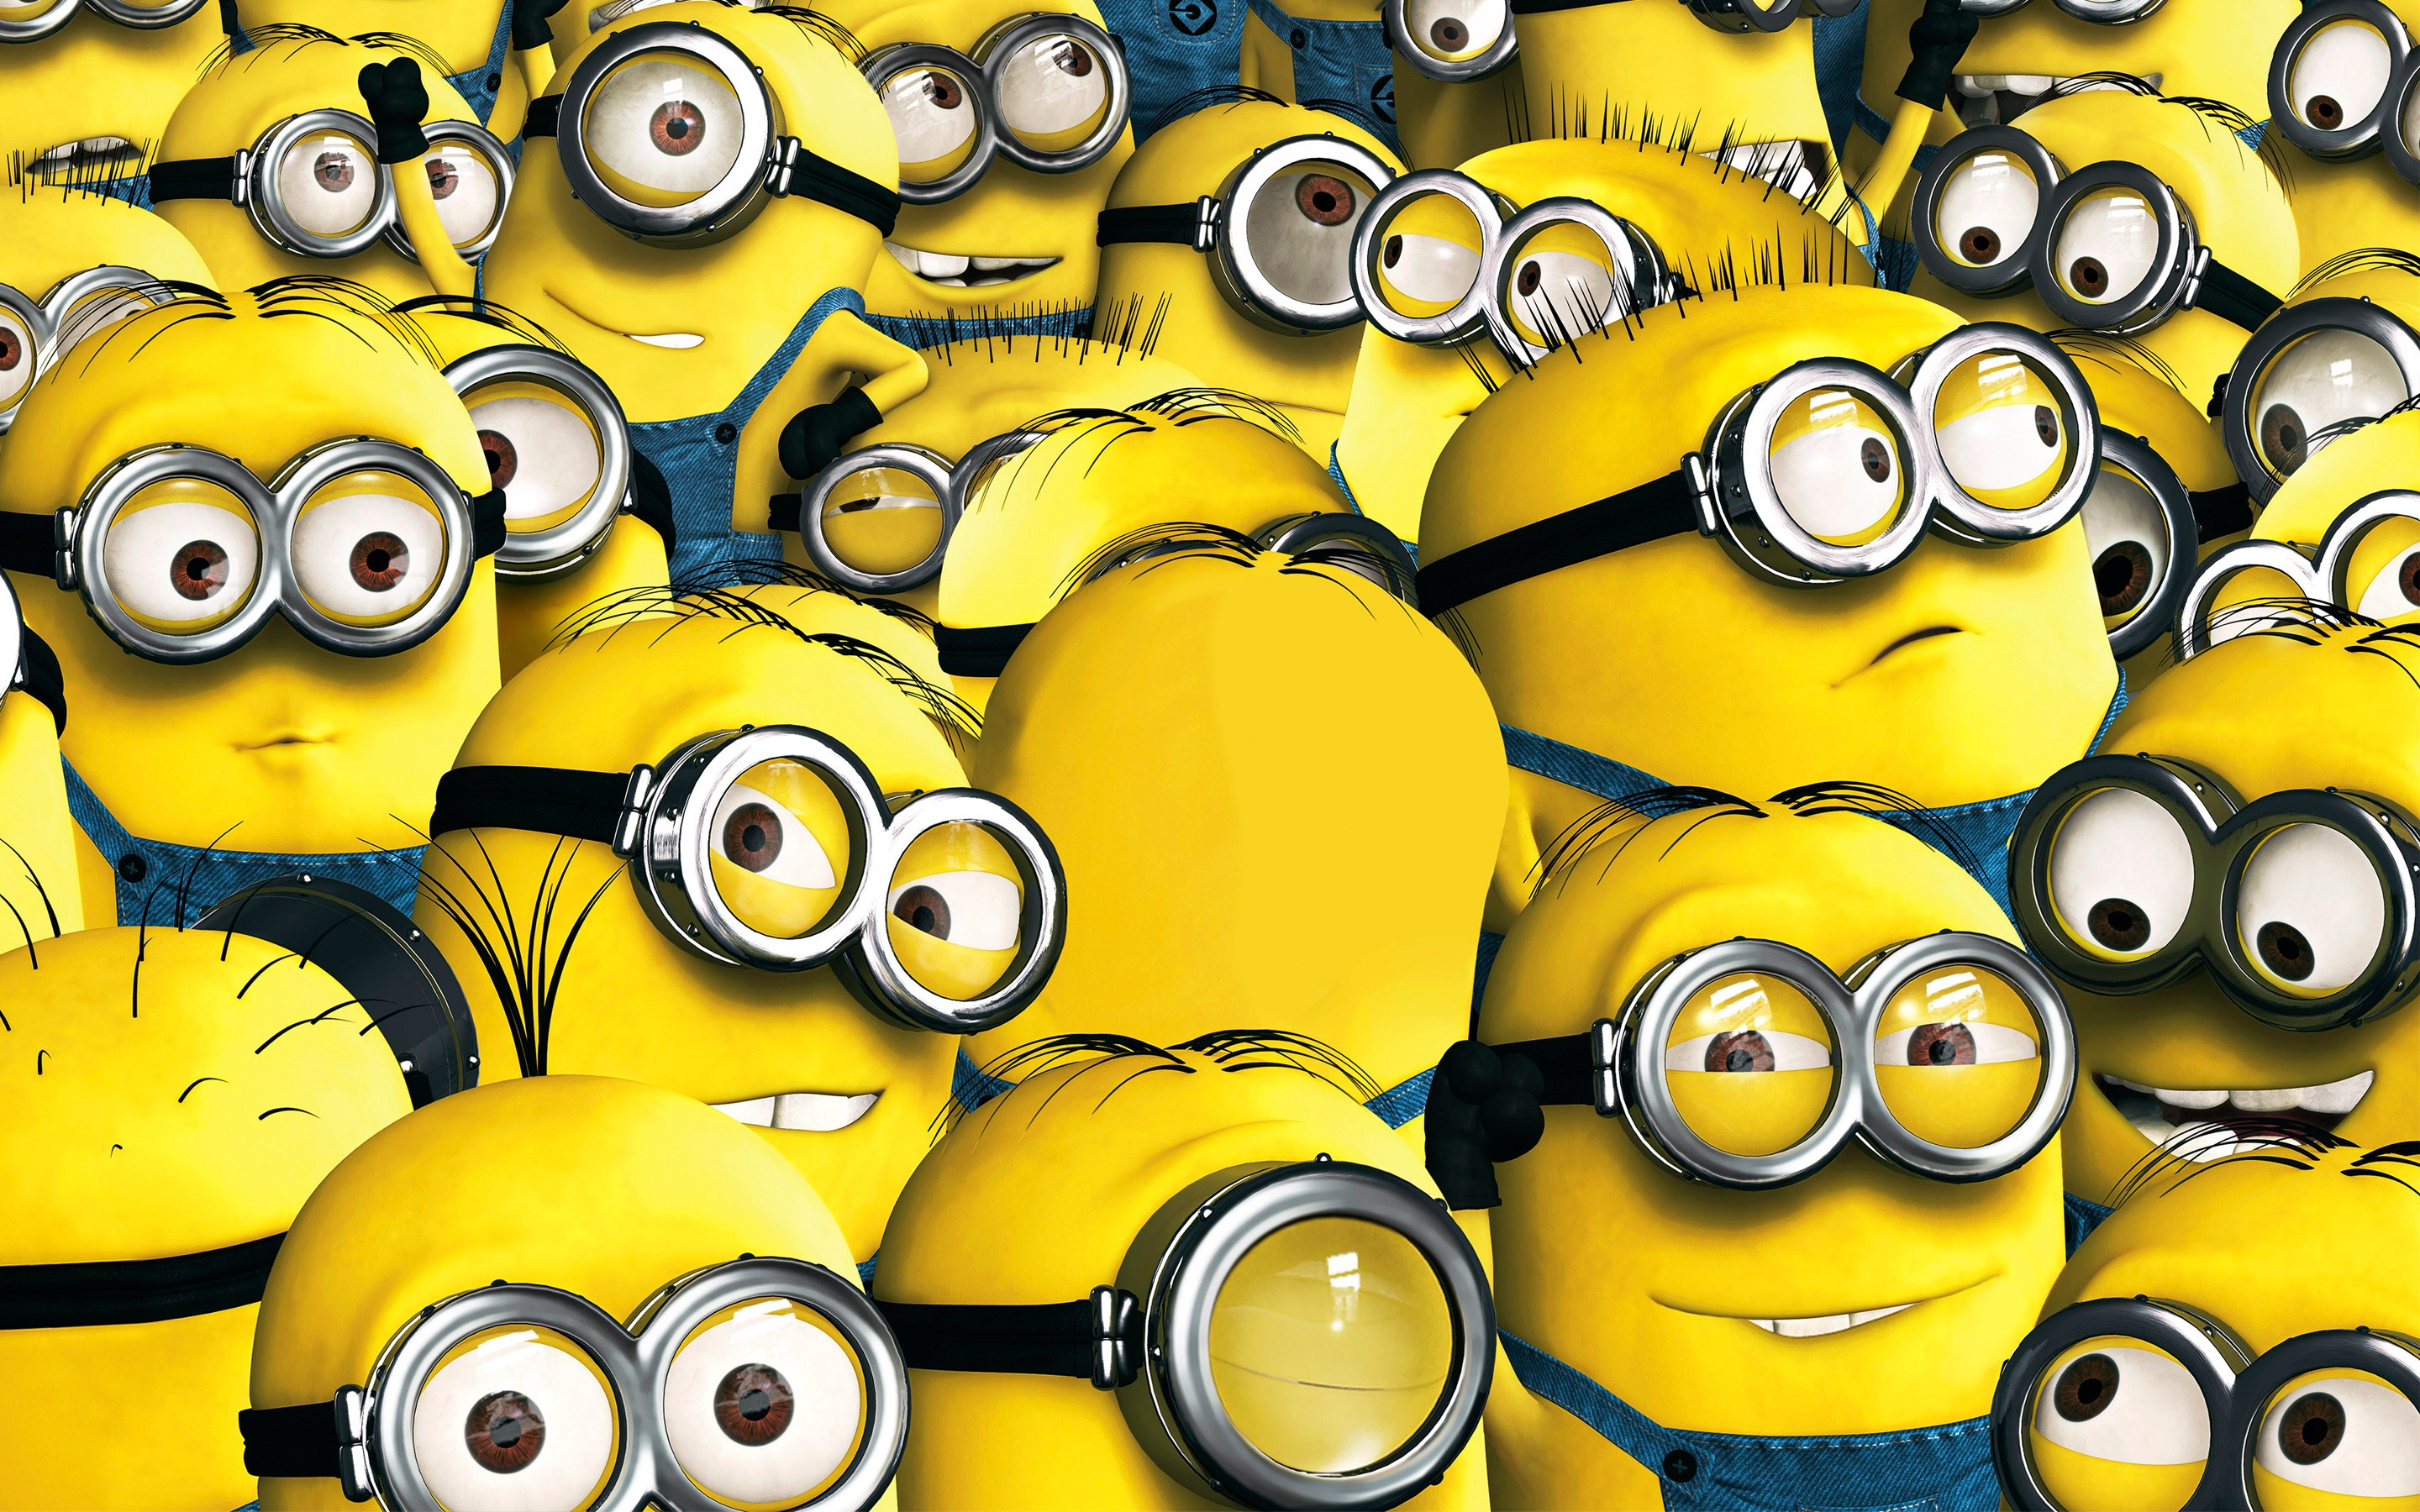 1600x900 despicable me minions 1600x900 resolution hd 4k wallpapers